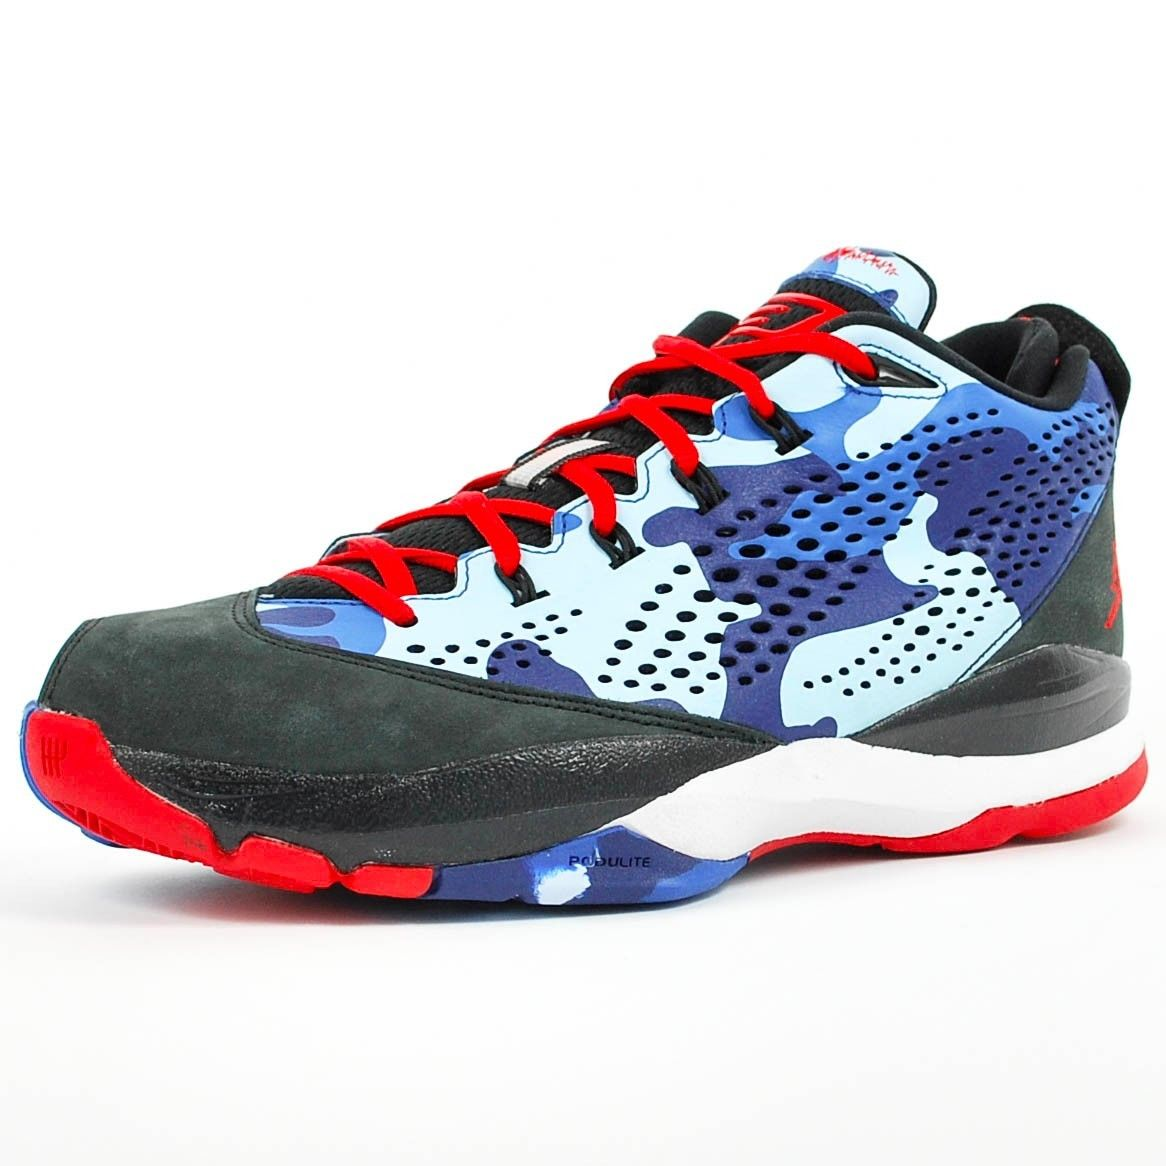 de075cd0475c5c ... best price jordan nike air jordan cp3.vii basketball shoe black sport  red chambray blue